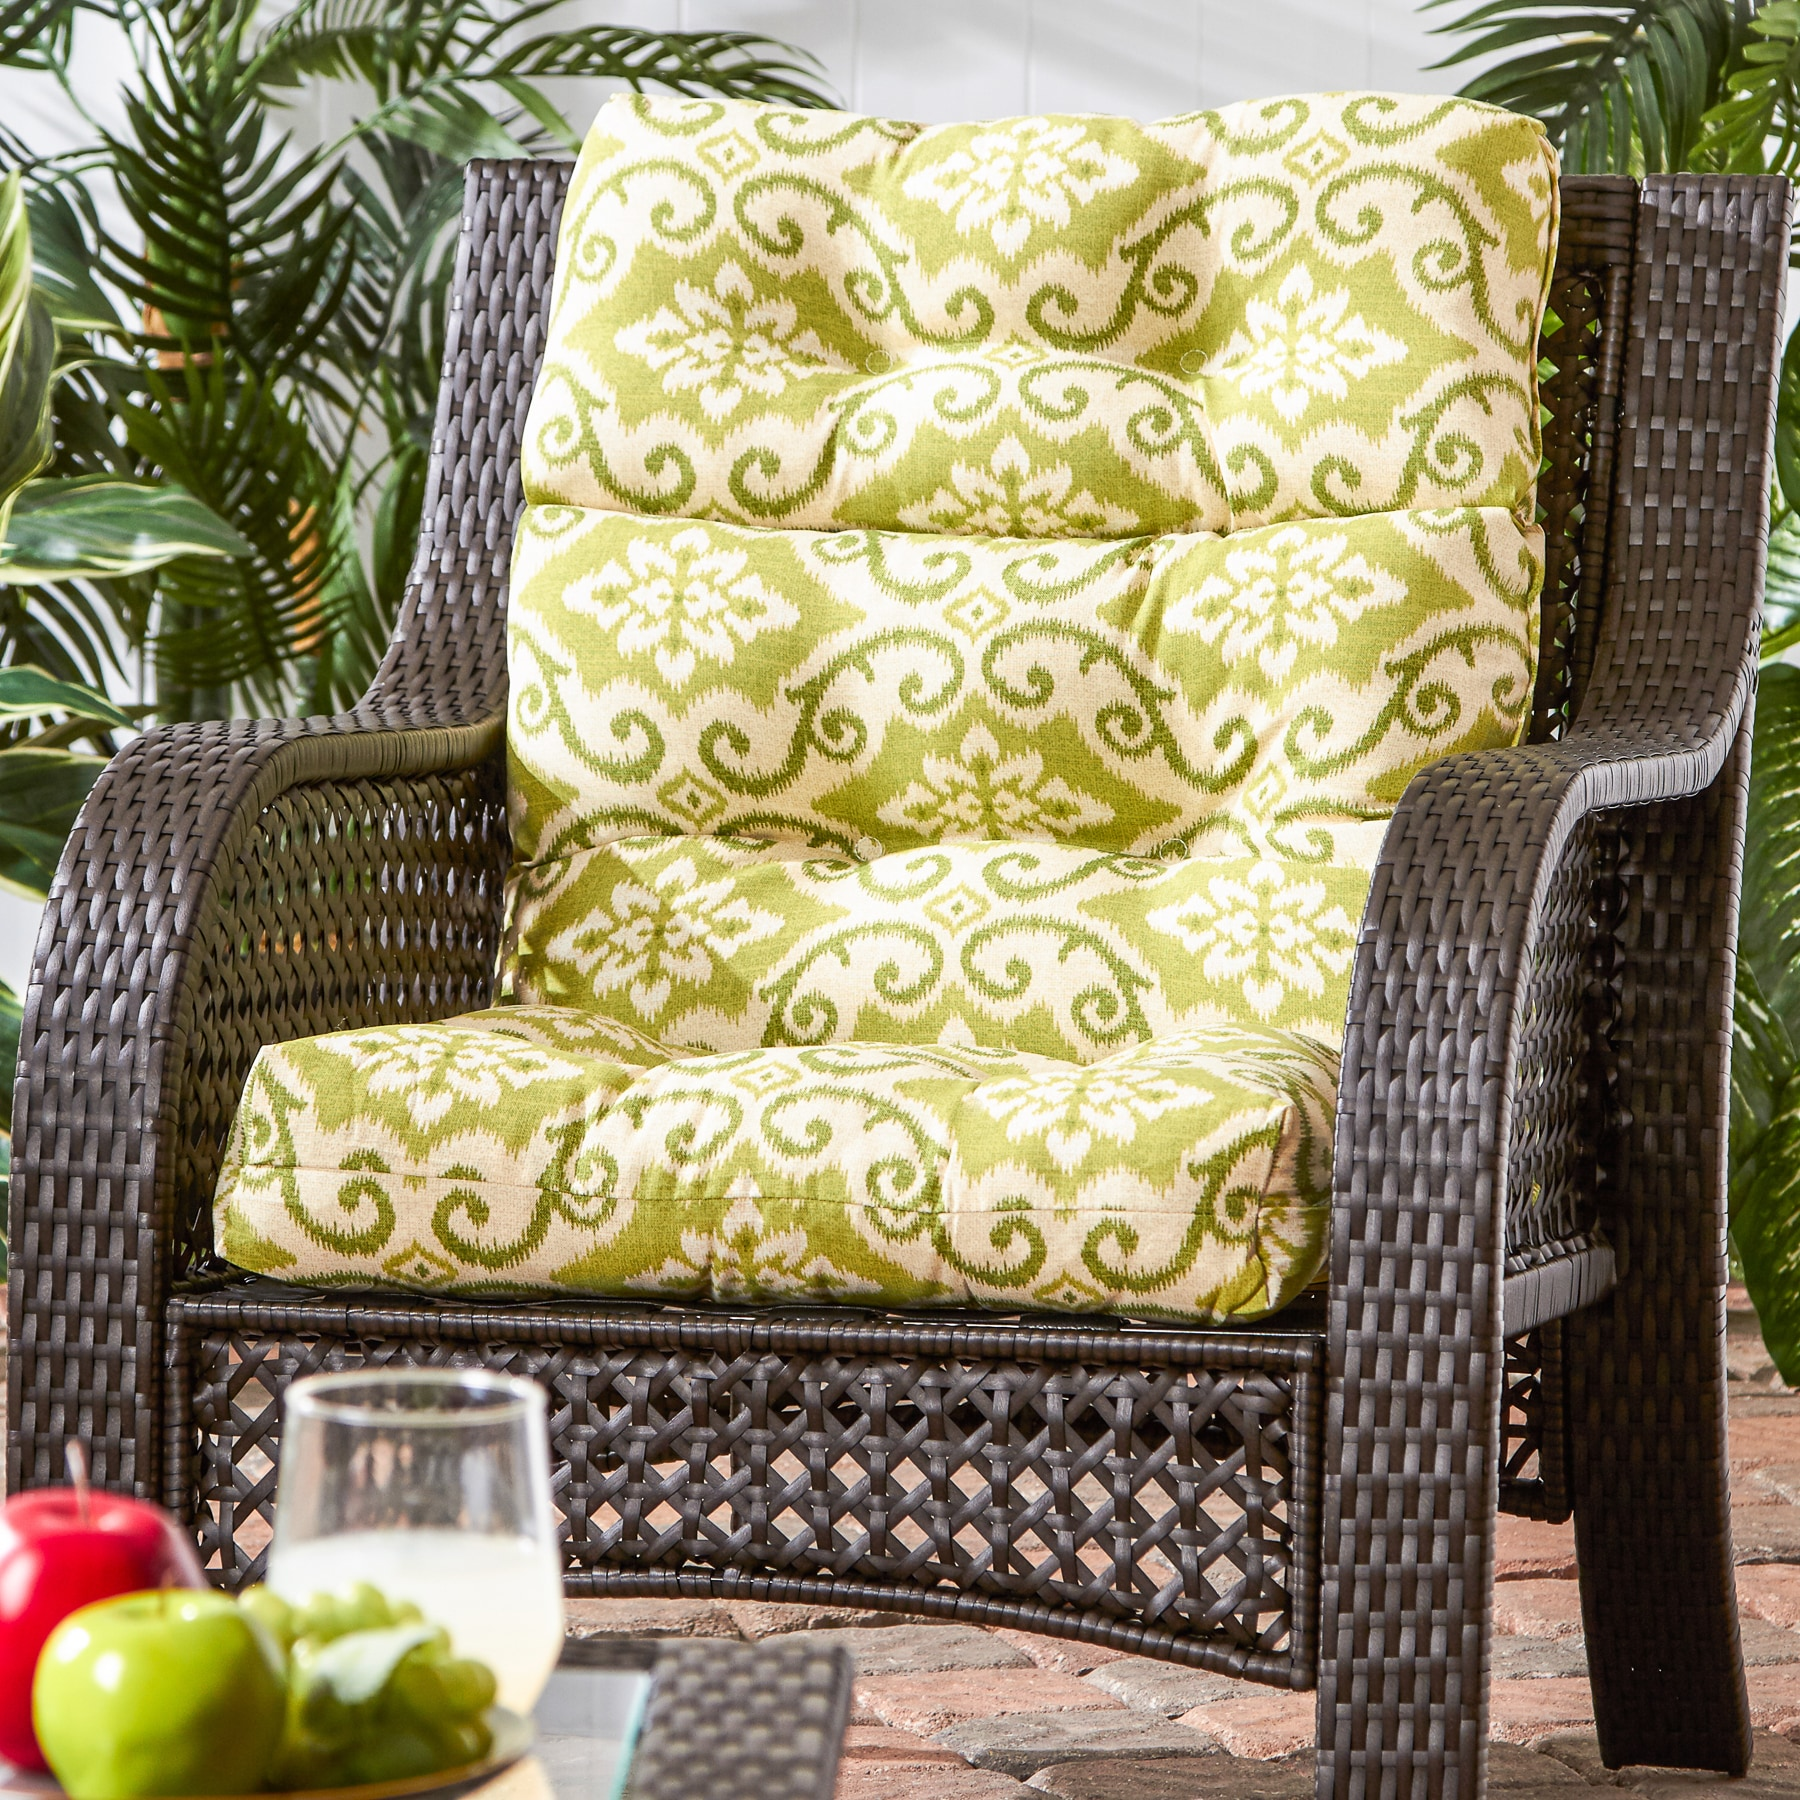 Havenside Home Cocoa Beach 22-inch x 44-inch Outdoor High Back Chair Cushion (Green Ikat)